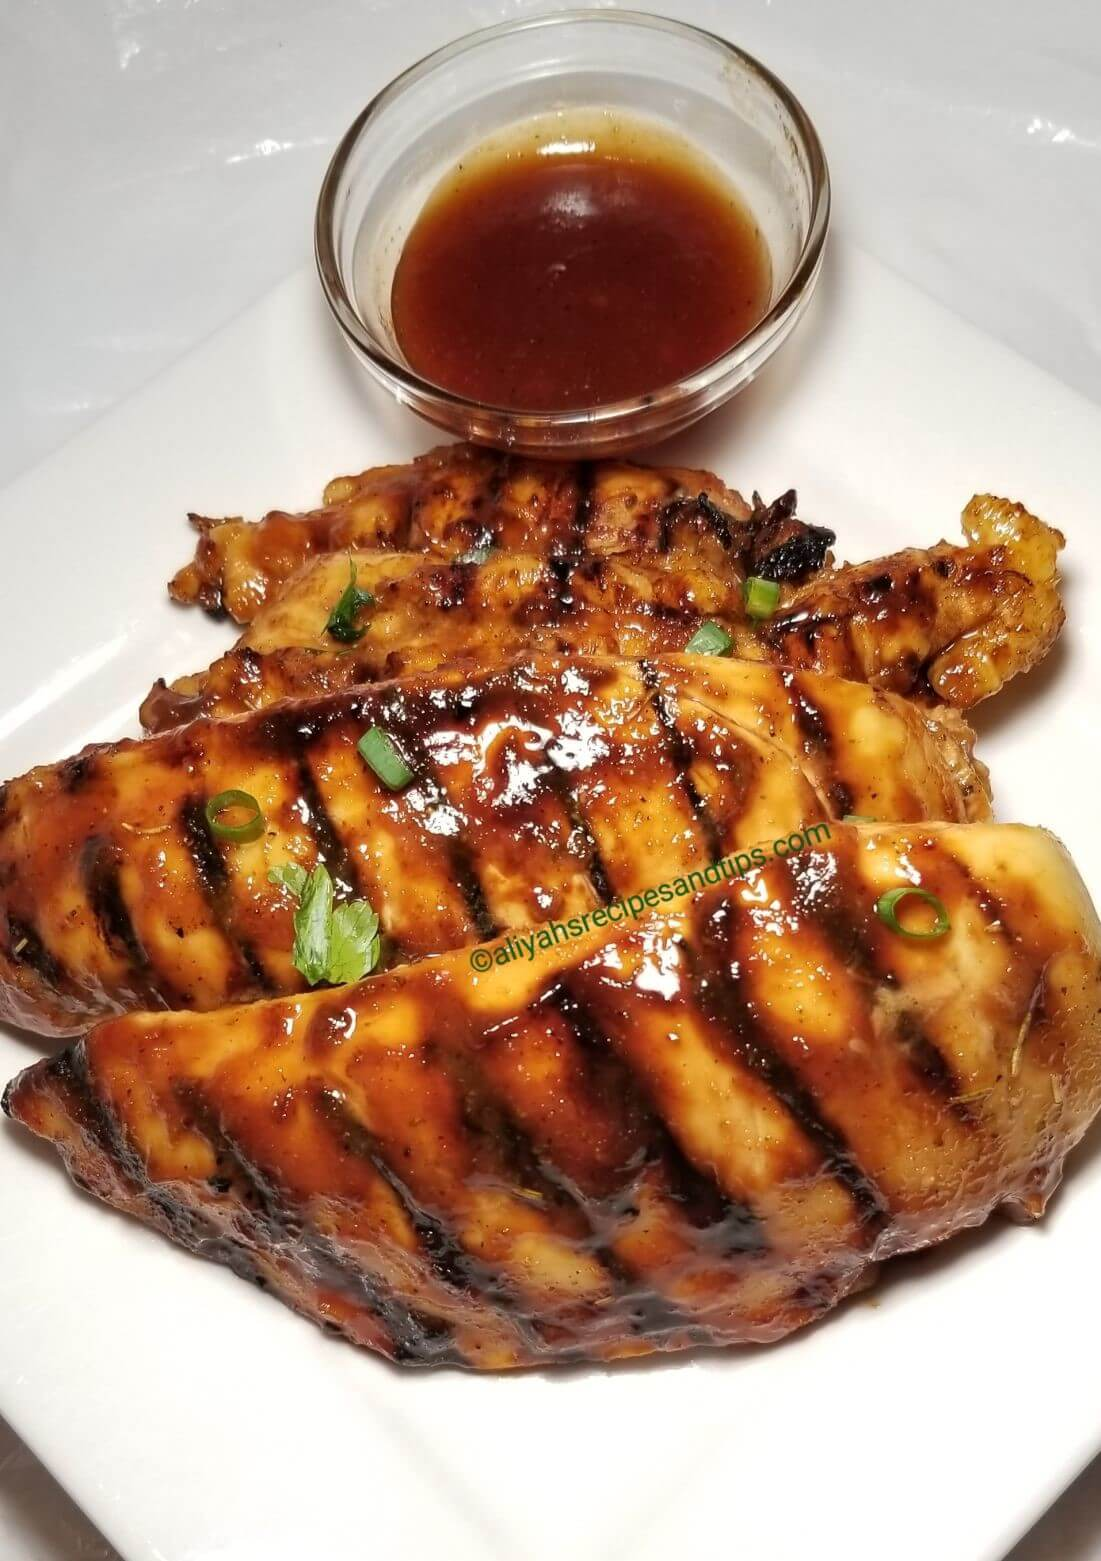 bbq chicken breast, oven , boneless, wood ranch, easy, recipe, grill, slow cooker, smoked, honey, marinated, cheese, meal, fried, delicious, perfect, bacon wrapped, skinless, rice, frozen, dinner, quick, charcoal, apple cider, bbq chicken breast, the best bbq chicken, bbq chicken, best grilled chicken breast, juicy barbecued chicken breast, oven bbq chicken, how to grill chicken breast, grilled chicken bbq, how to bbq skinless boneless chicken breast